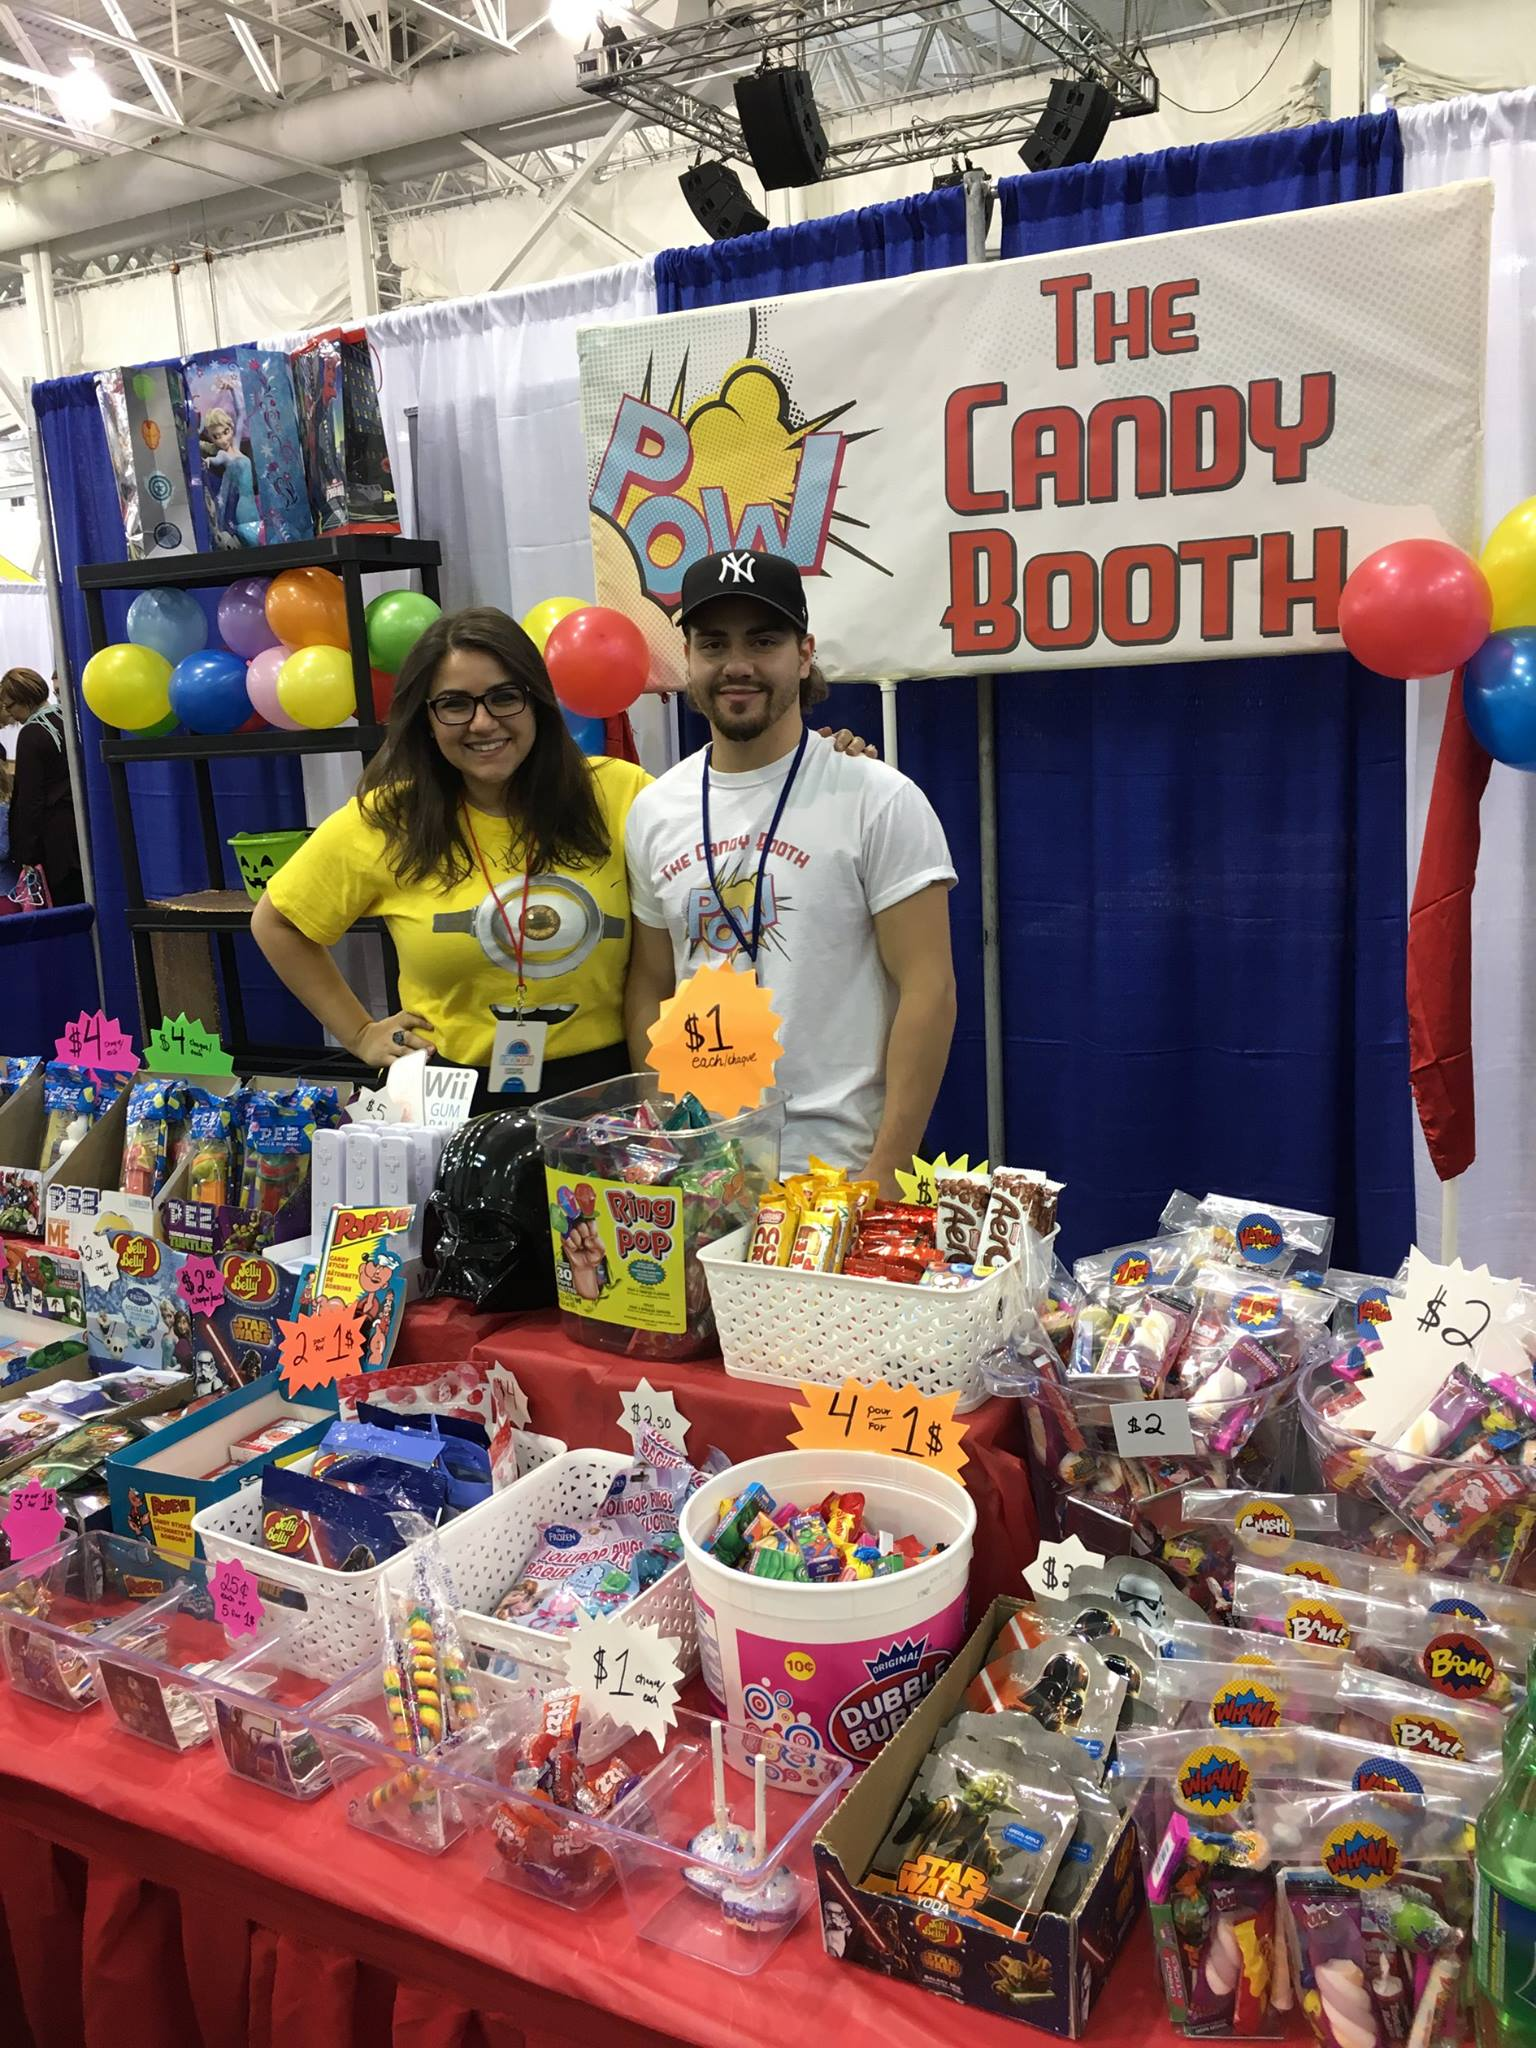 THE CANDY BOOTH